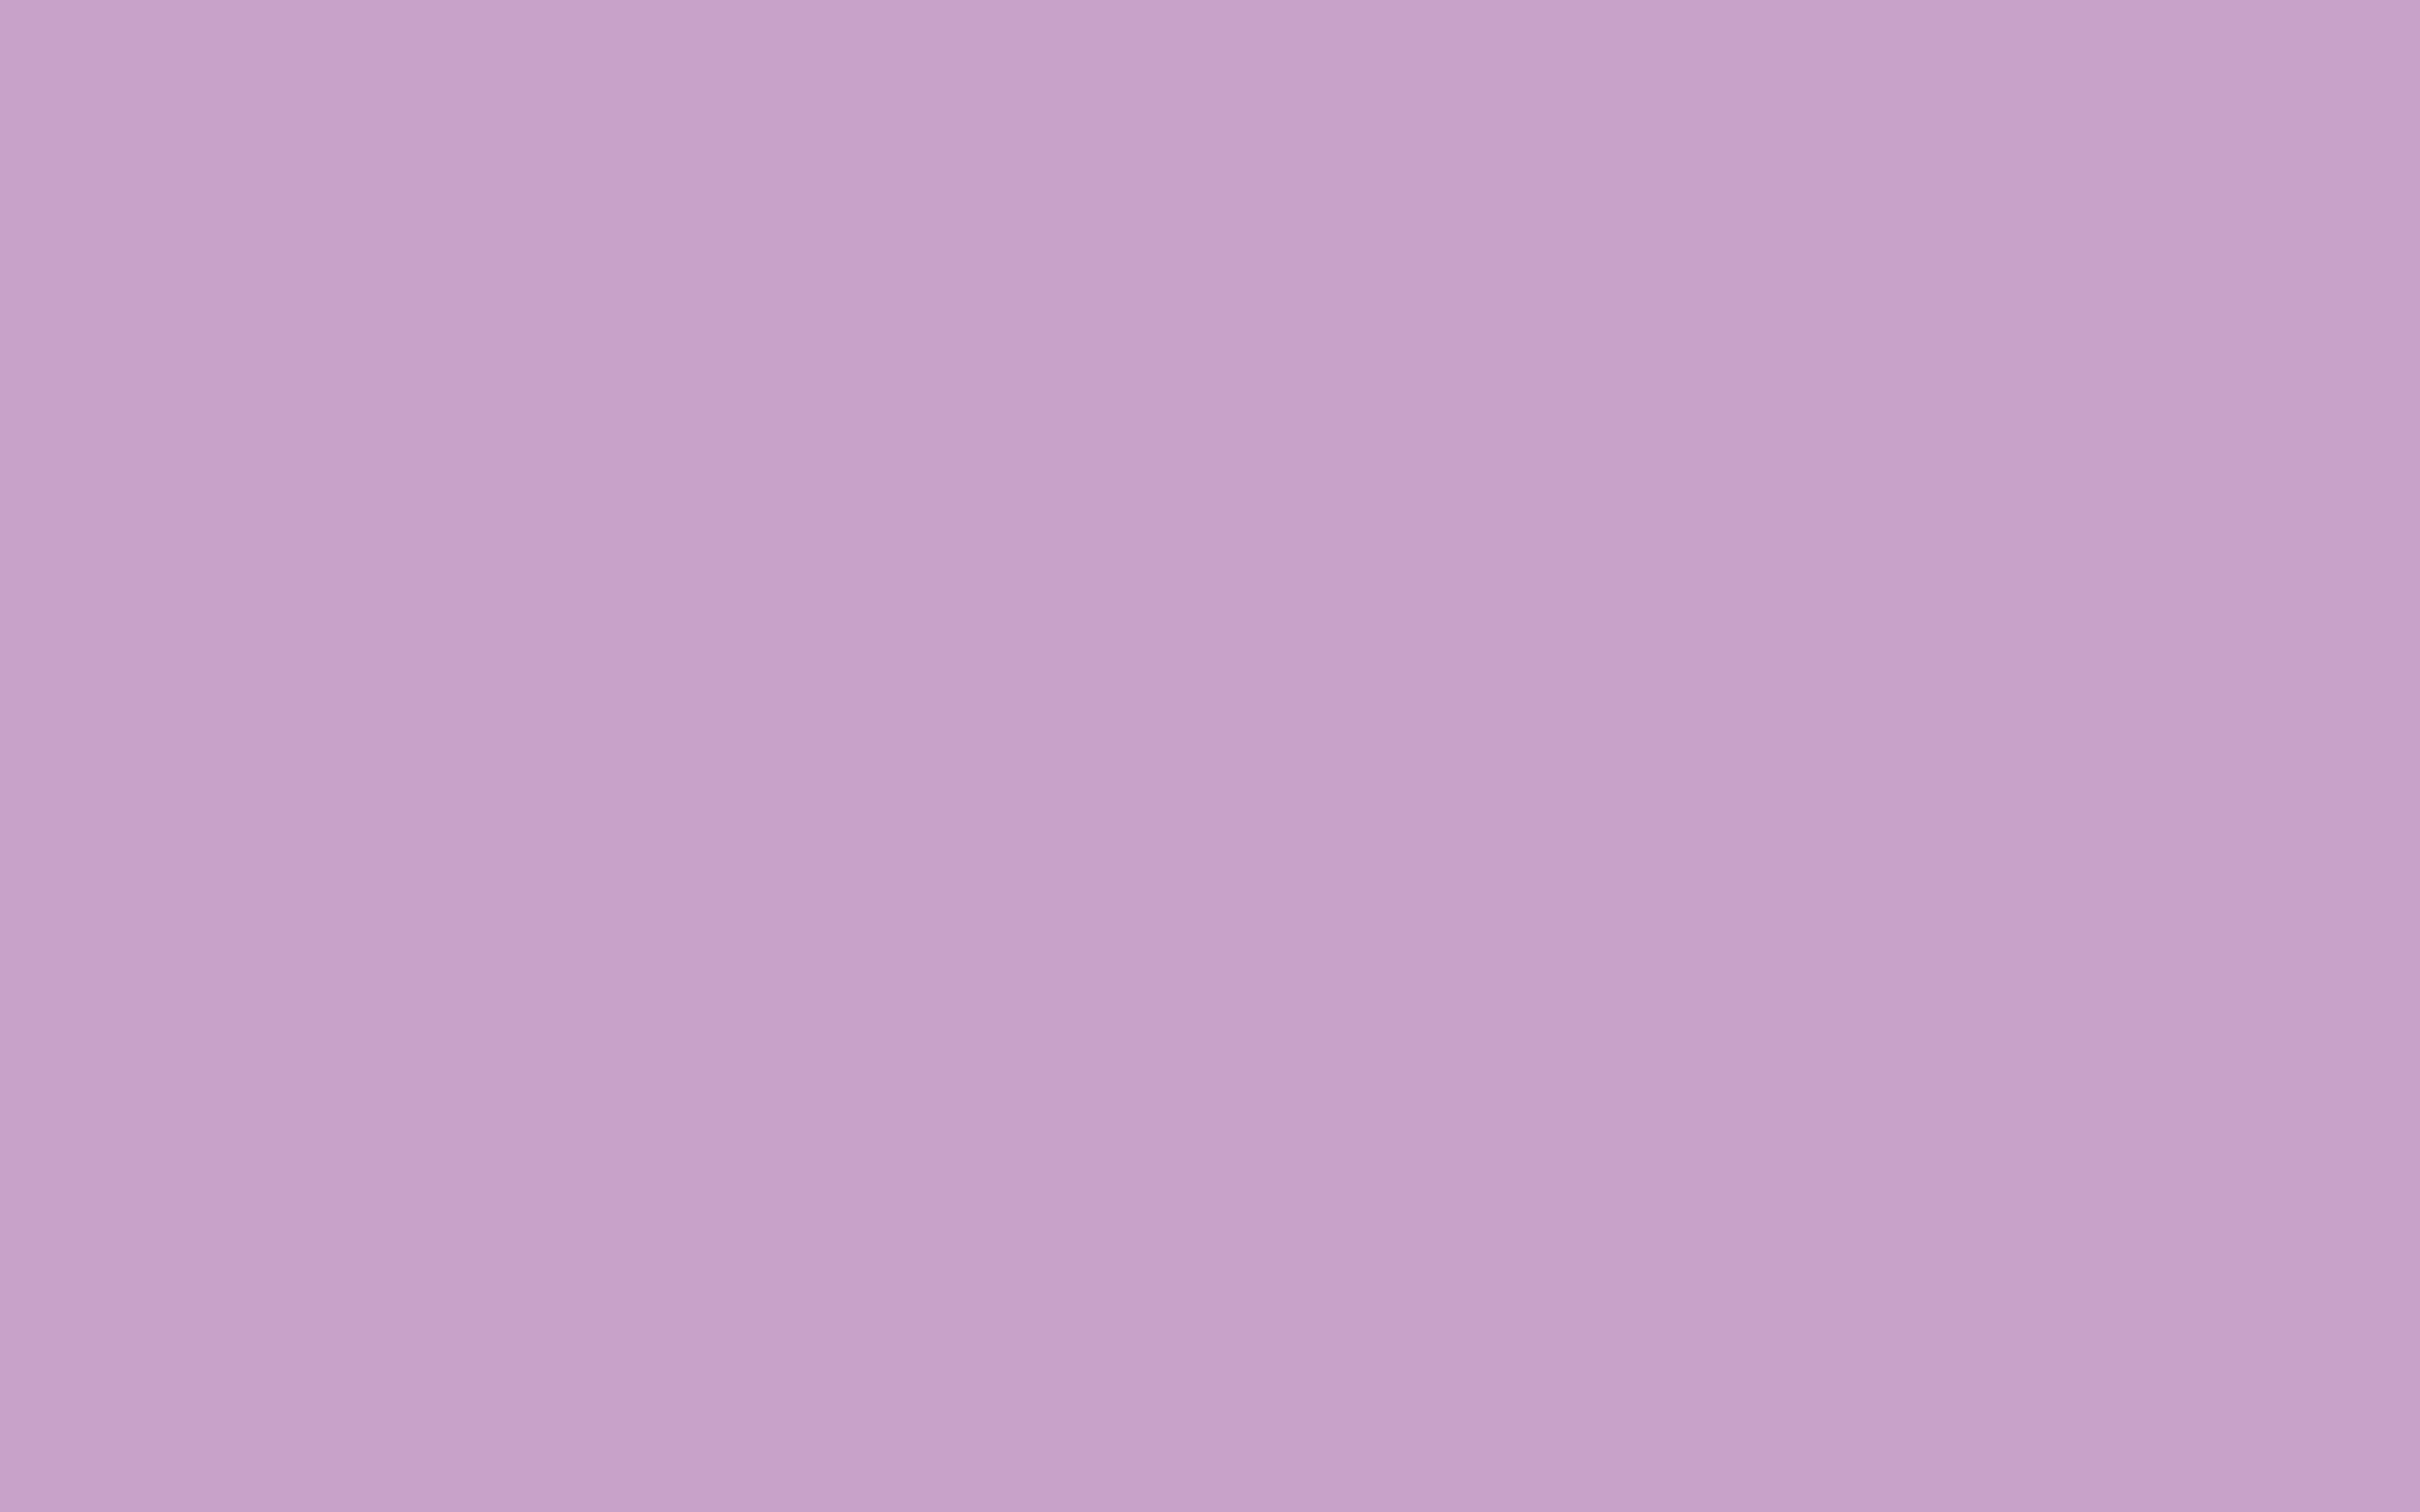 2560x1600 Lilac Solid Color Background